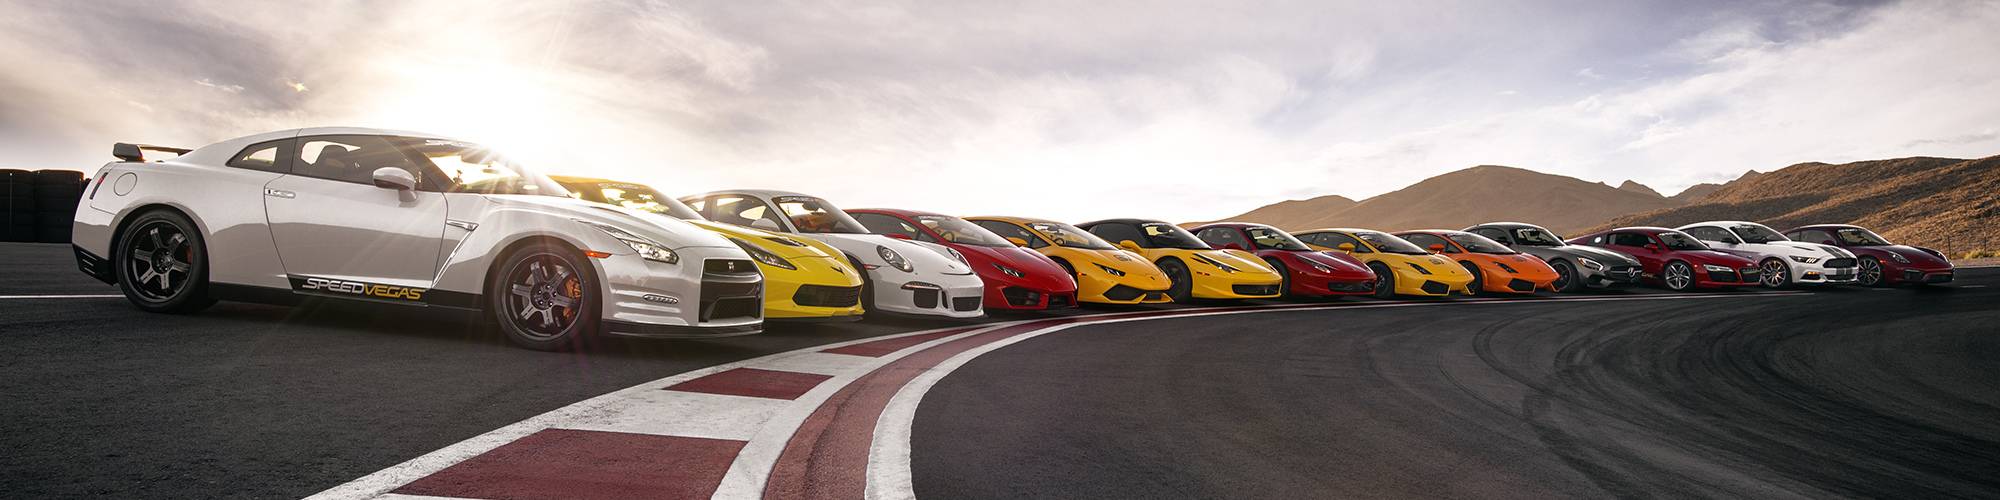 Imagine it. Your customer gets an invitation to an exclusive driving event, featuring Ferrari, Lamborghini, Bentley and more icons. The big day arrives. Shortly after slipping behind the wheel of the most powerful cars on the planet, your customer grins. Wow, as she says, she'll never forget it.